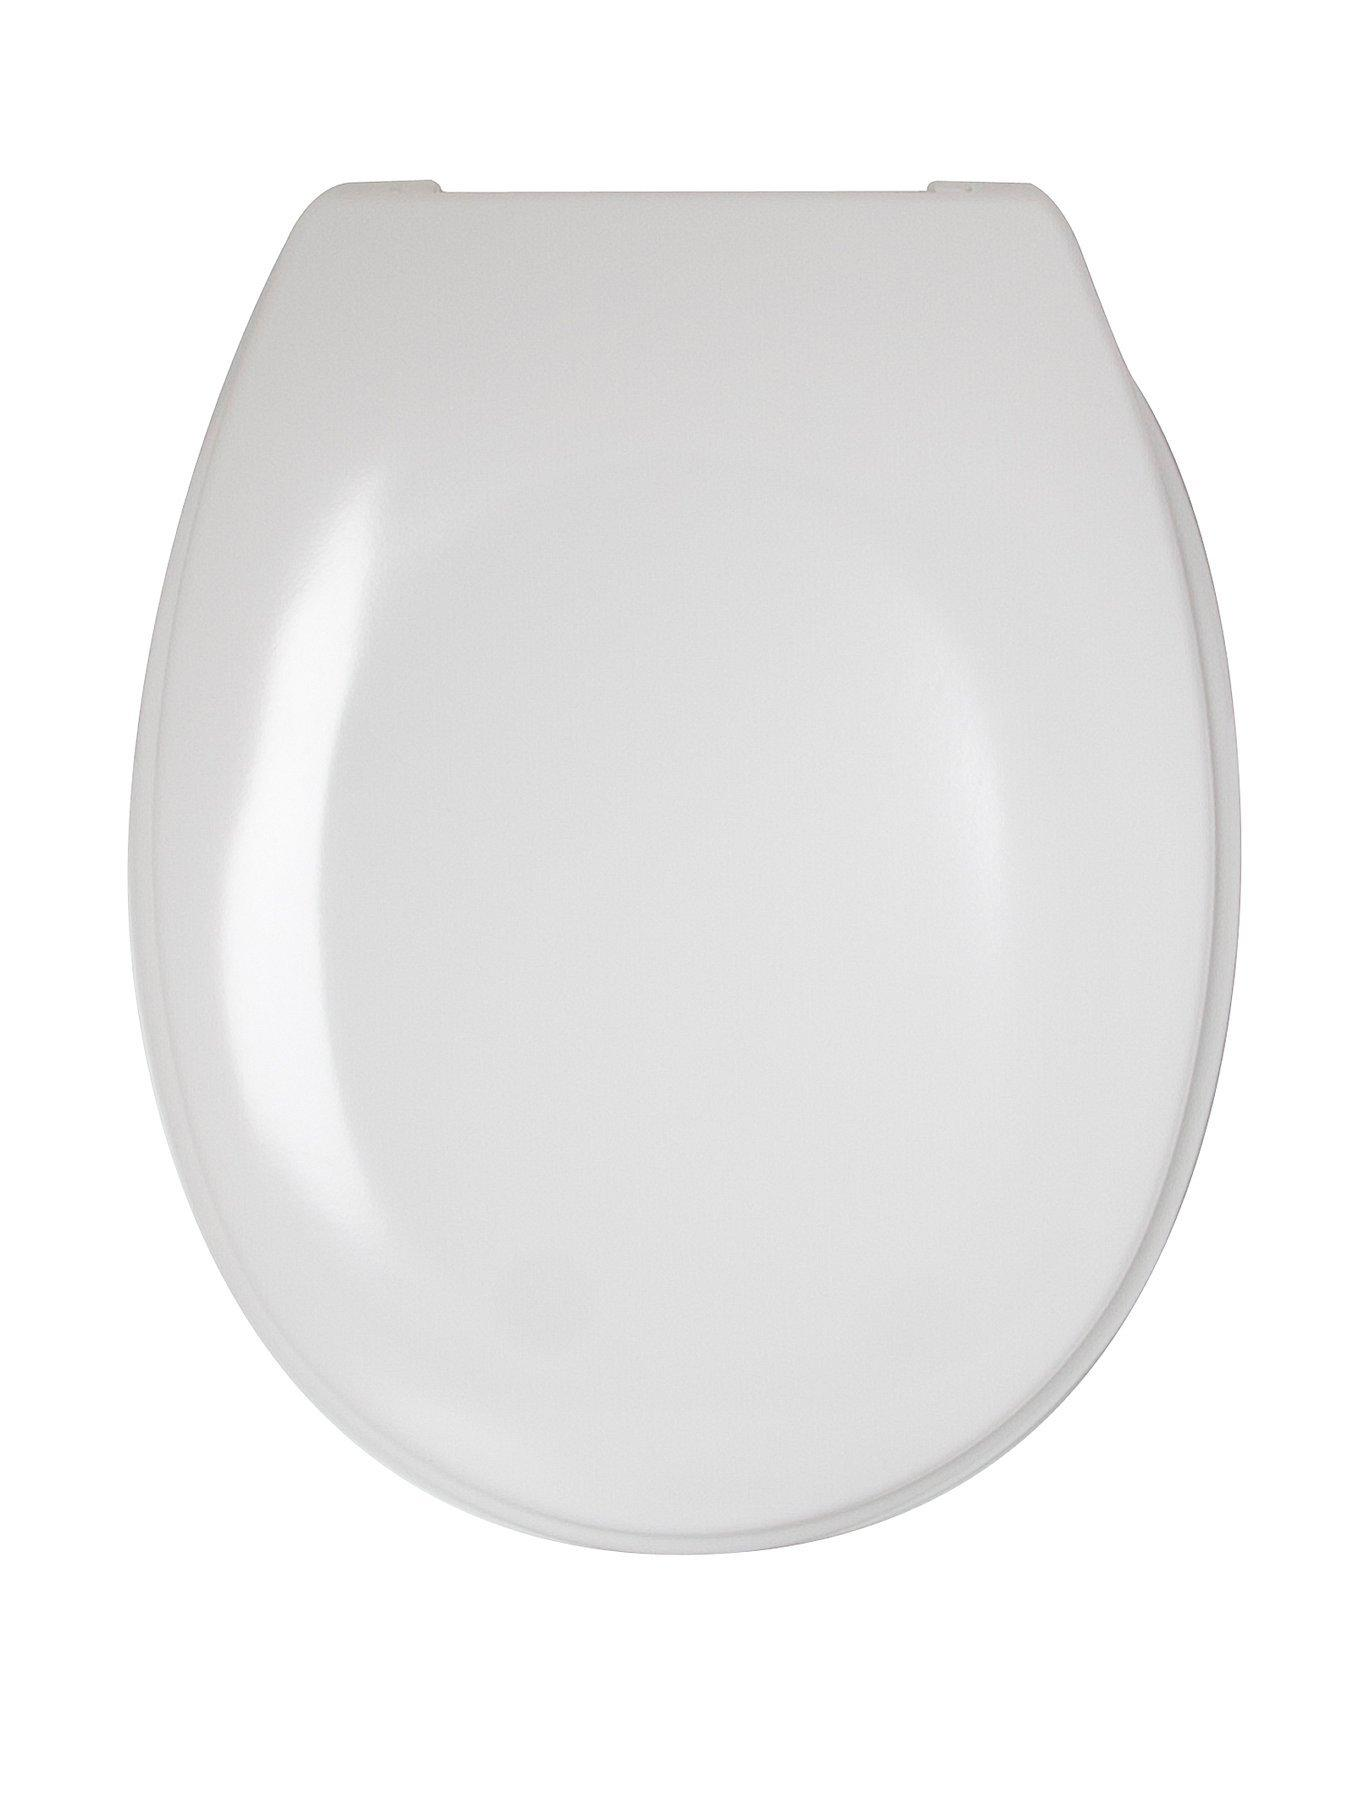 """New White 18/"""" MDF Toilet Seat With Solid Zinc Fittings /& Hinges Branded Boxed"""